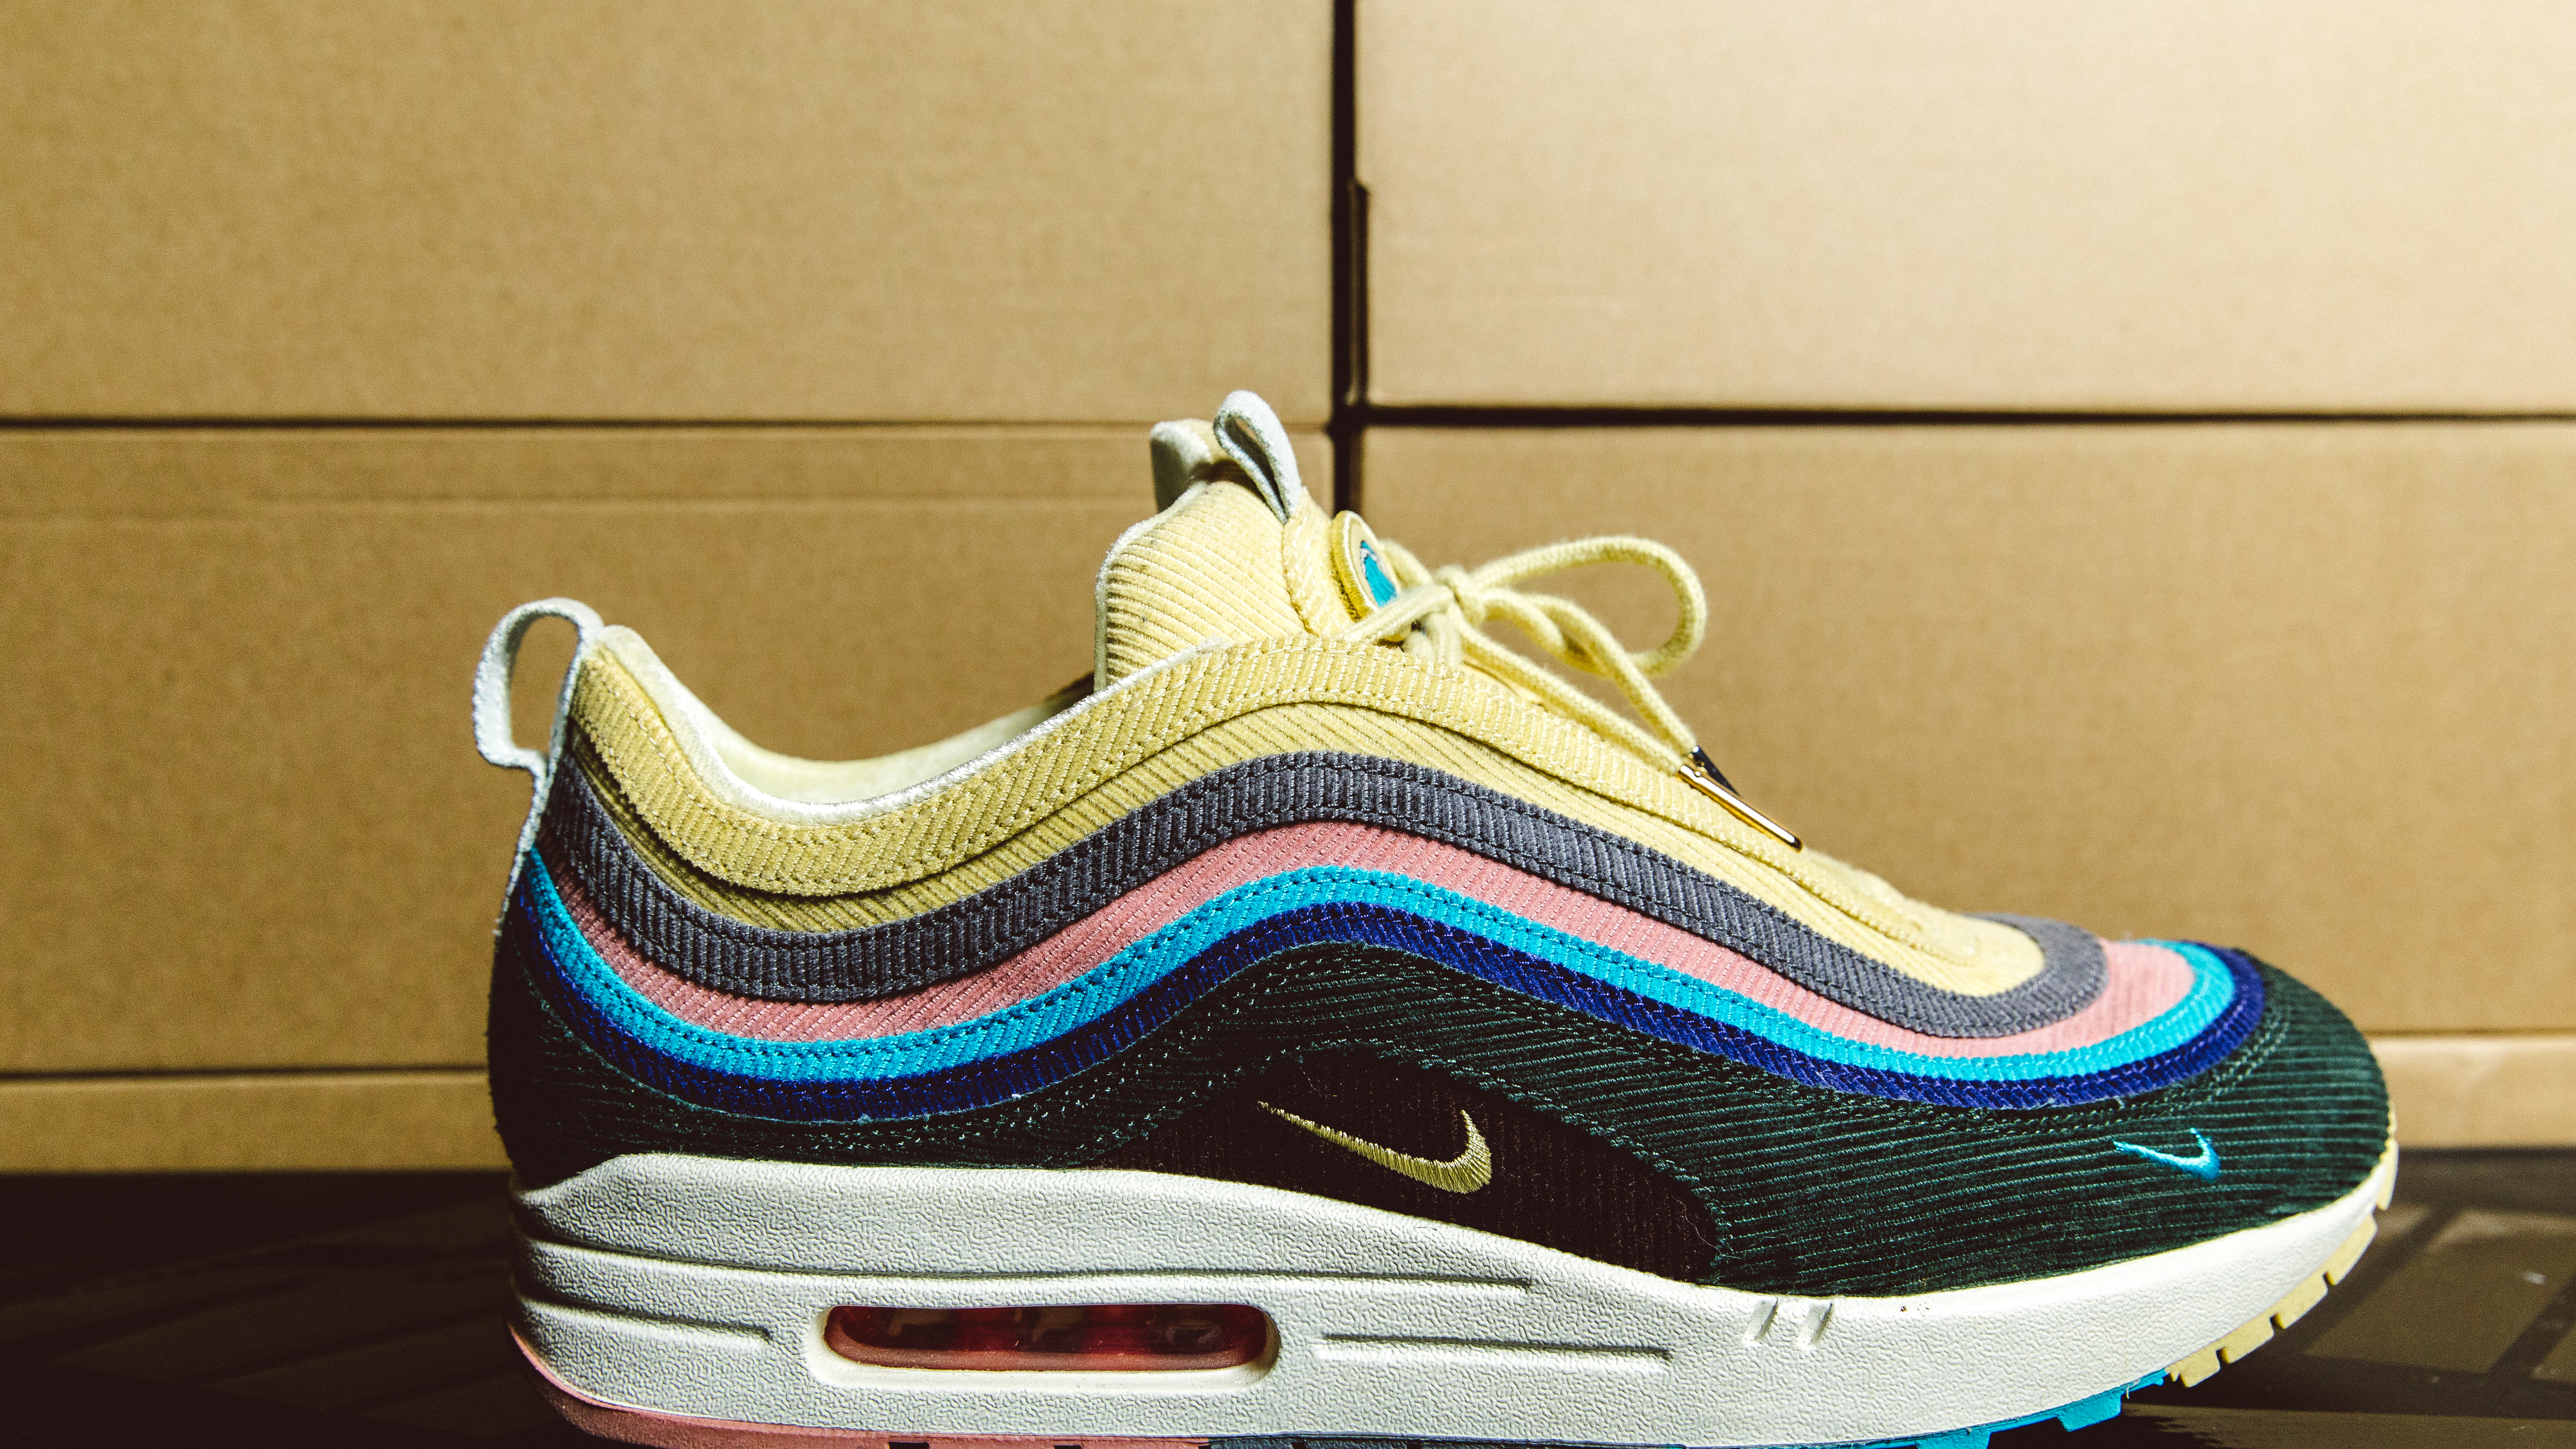 Brody's Air Max 97/1 Sean Wotherspoon